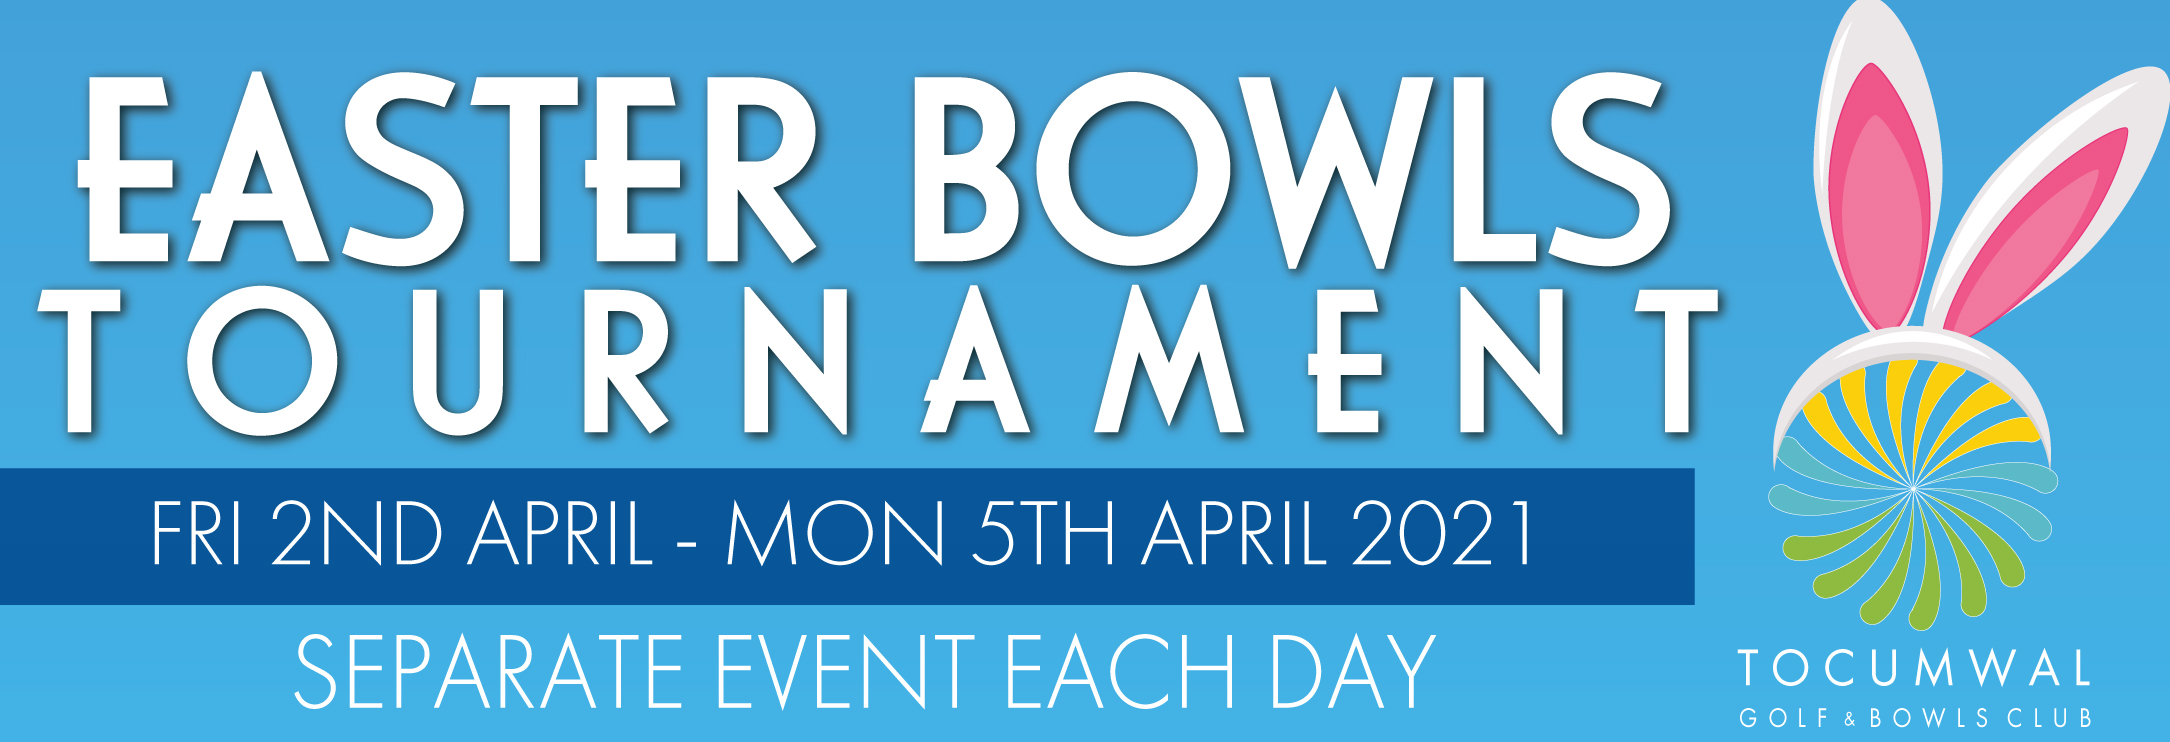 Easter-Bowls-Tournament-2021-BANNER